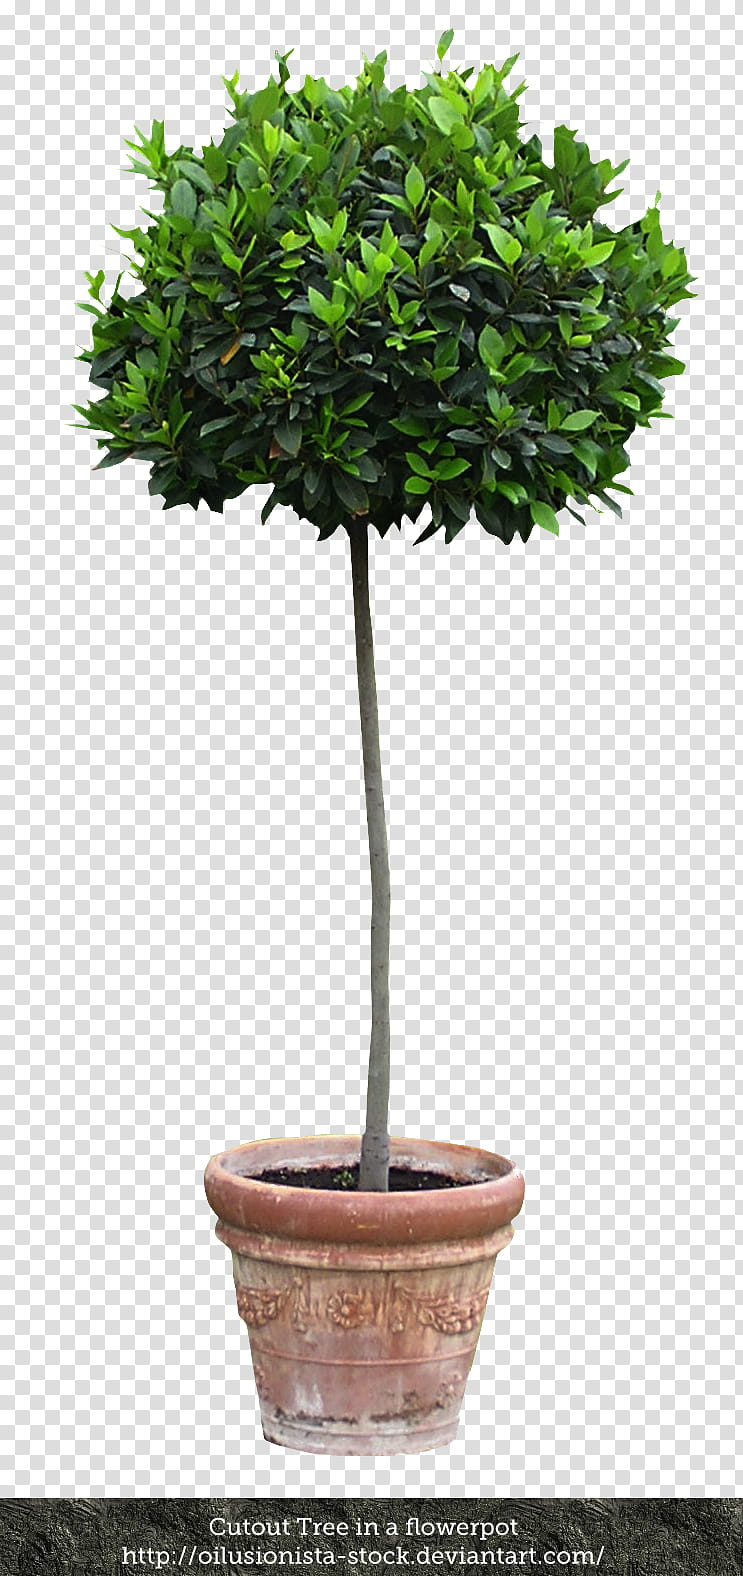 Cutout Tree in a flowerpot, green plant in vase transparent.